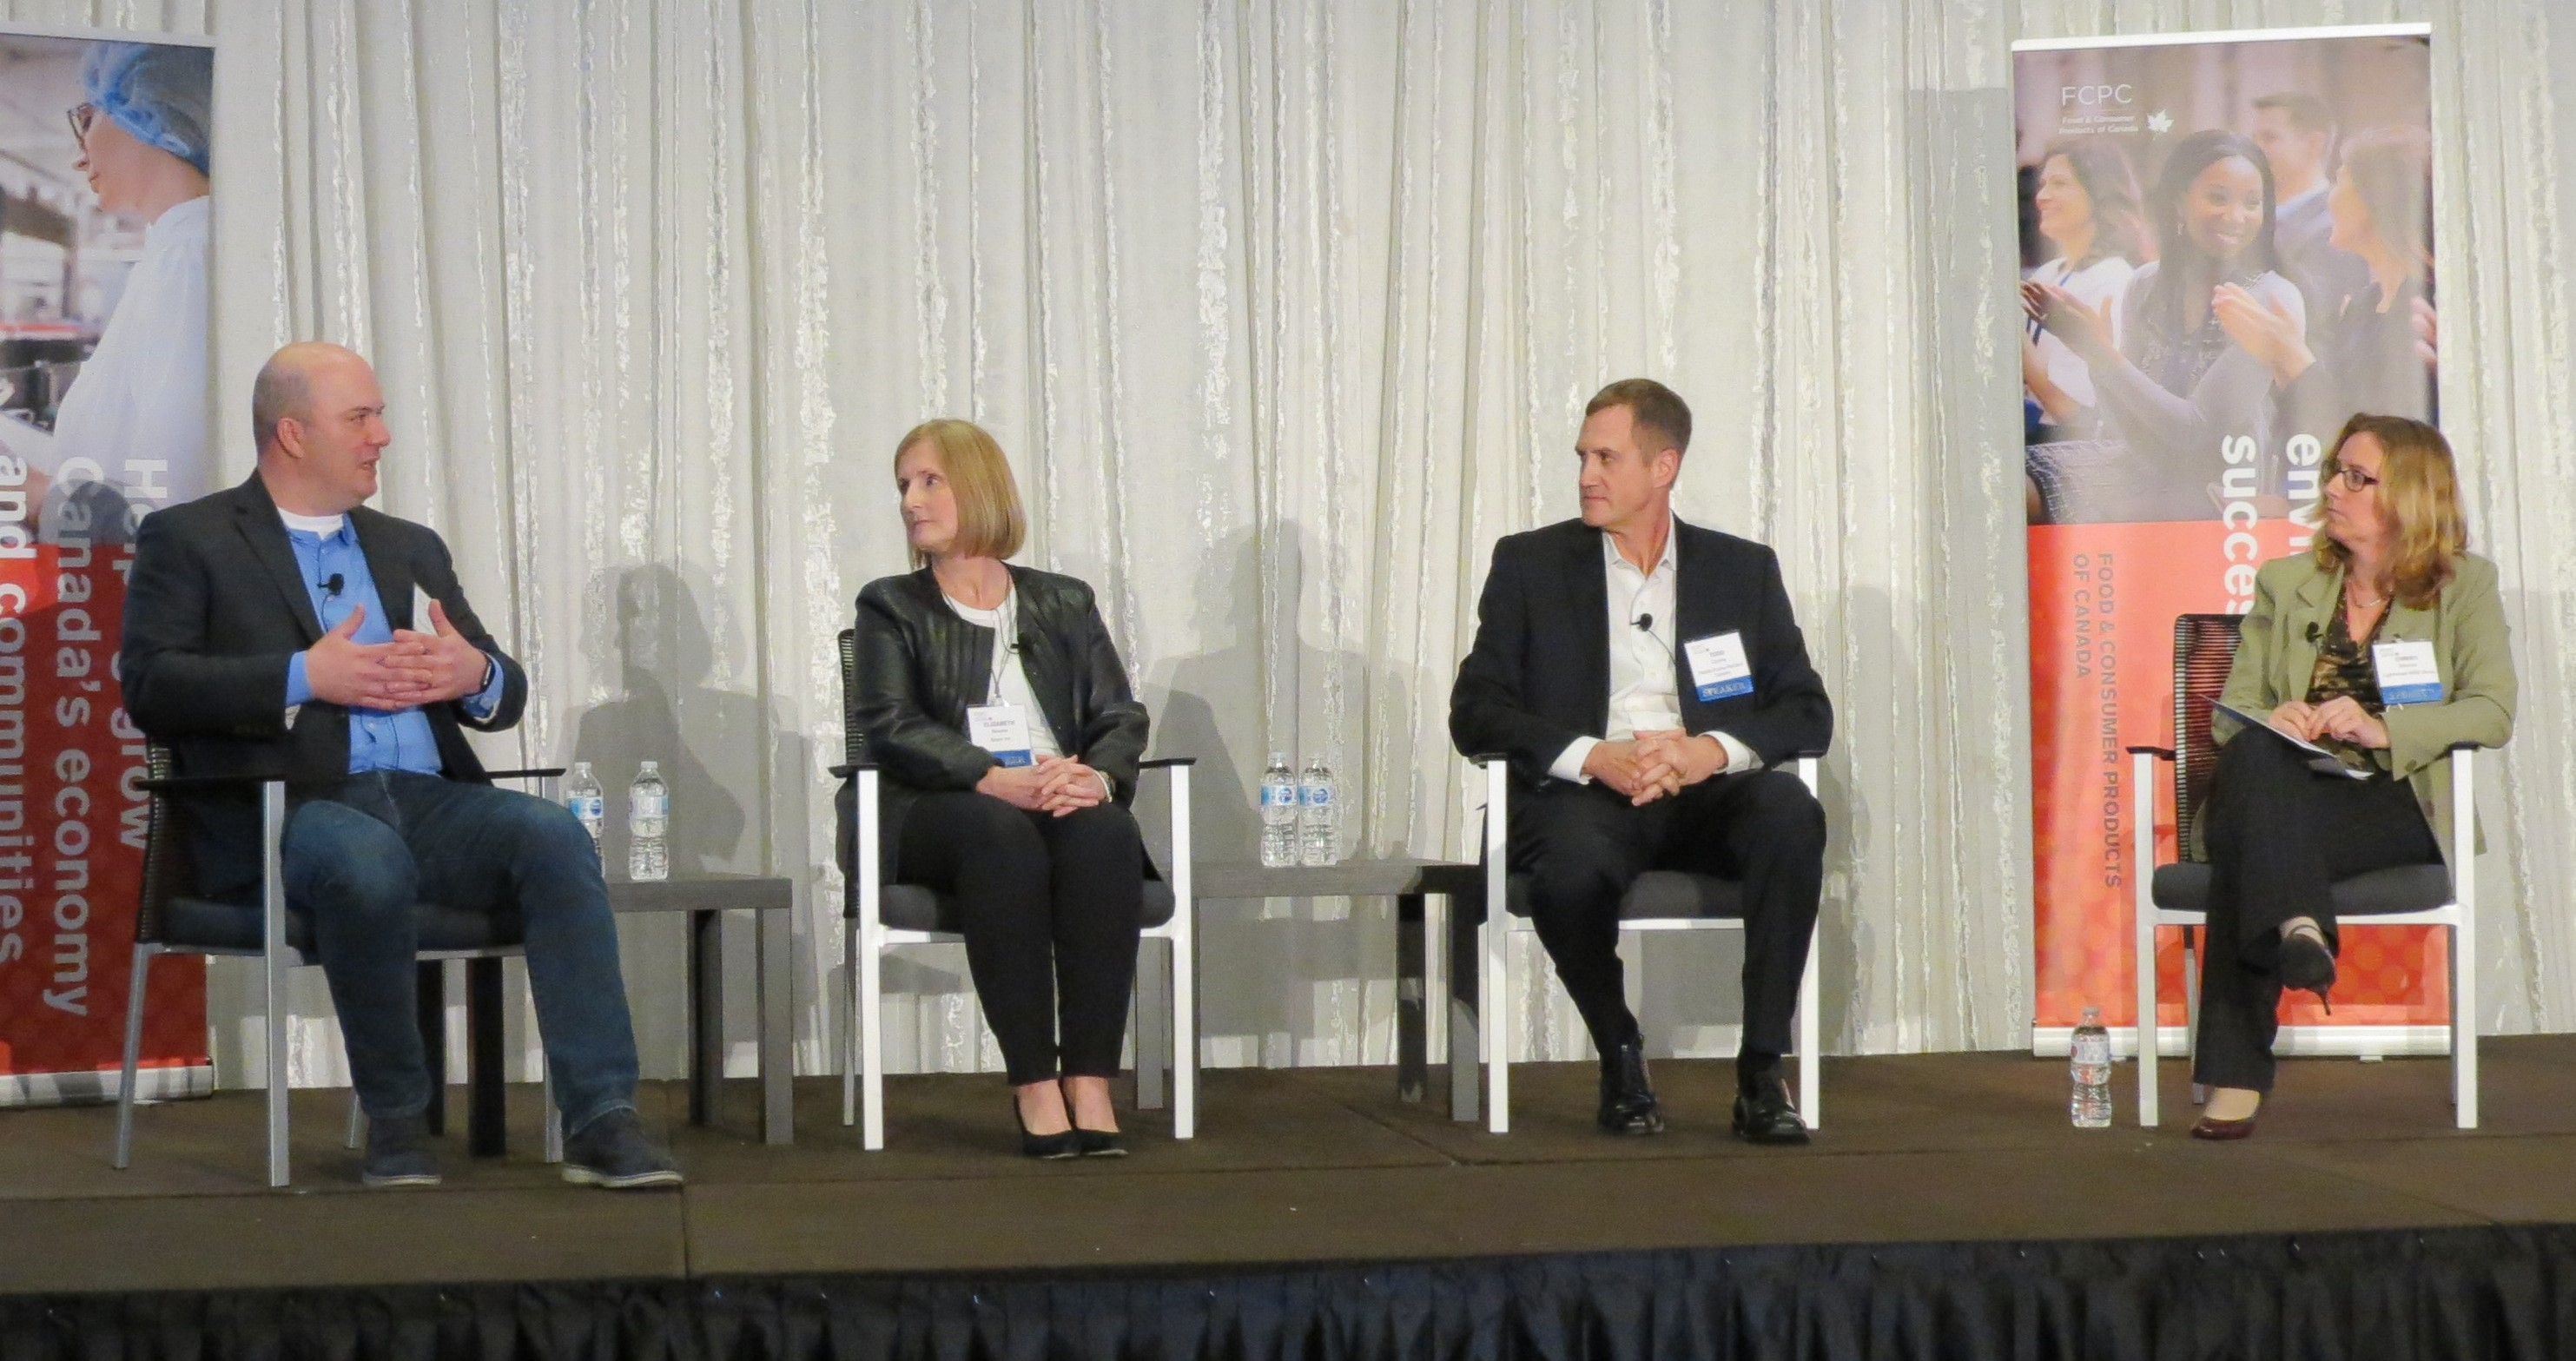 (Panel guests left to right: Todd Kelly, General Manager of KIND Healthy Snacks; Liz Beemer, SVP & Country Division Head of Consumer Health, Bayer Inc.; Todd Cooney, President of Nestlé Purina PetCare Canada; moderator Christi Scarrow, Lighthouse NINE Group.)